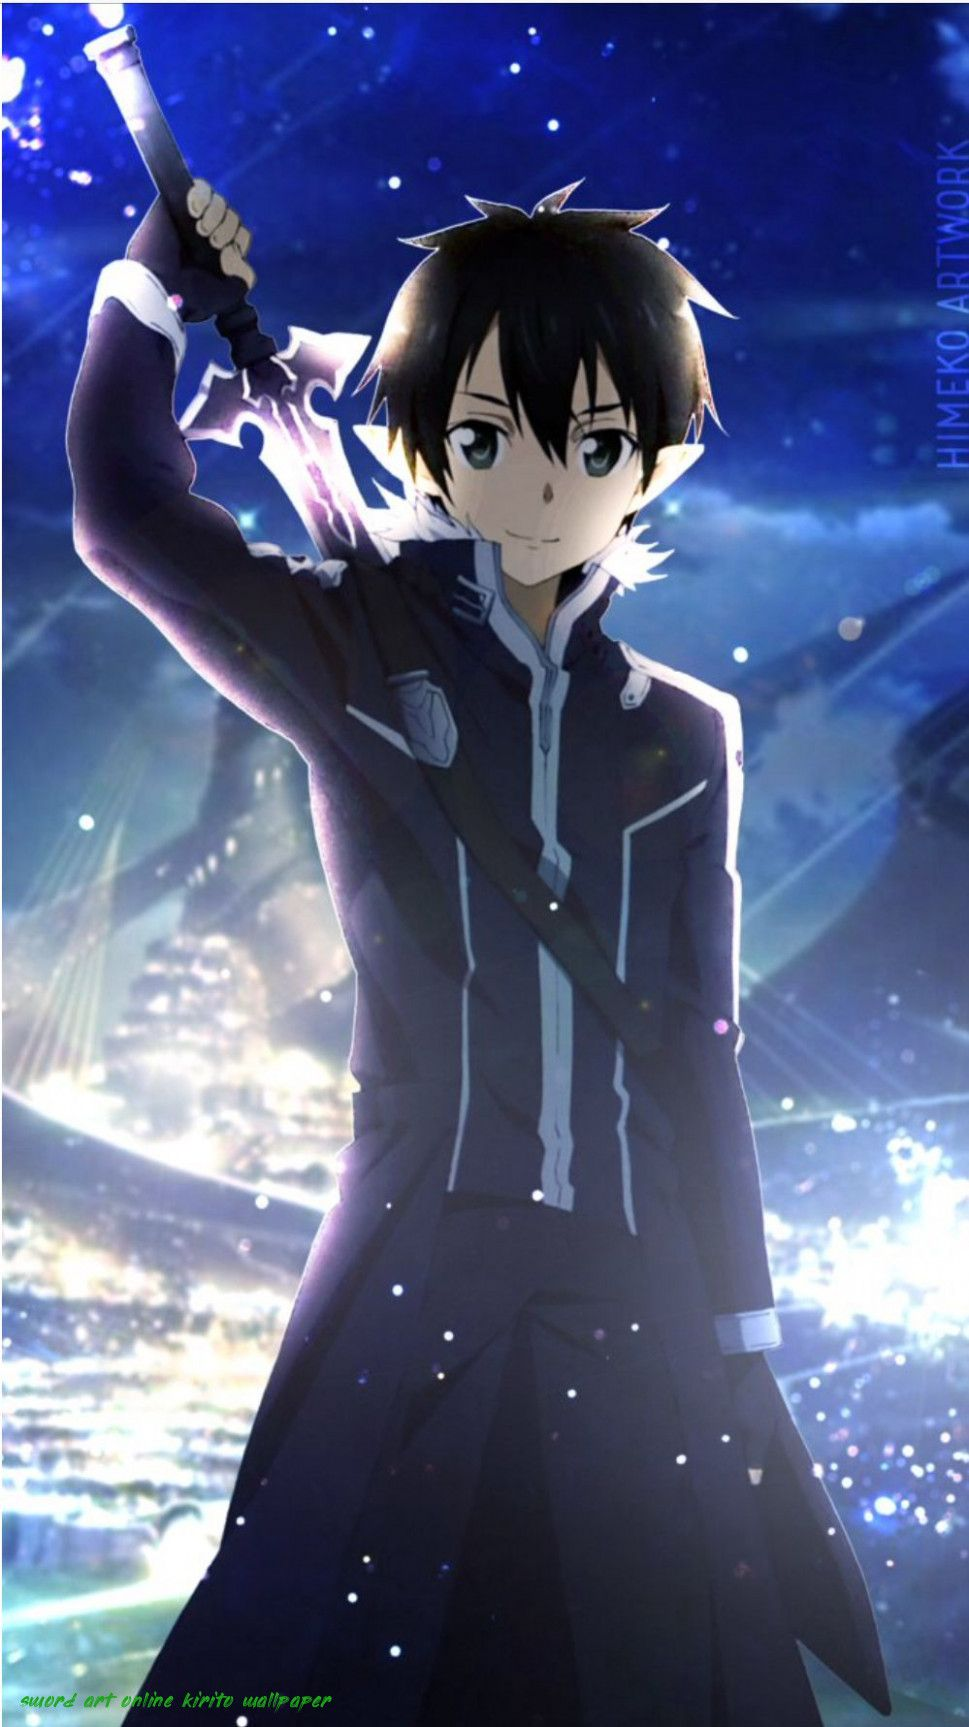 The Latest Trend In Sword Art Online Kirito Wallpaper Sword Art Online Kirito Wallpaper In 2020 Sword Art Sword Art Online Kirito Sword Art Online Wallpaper